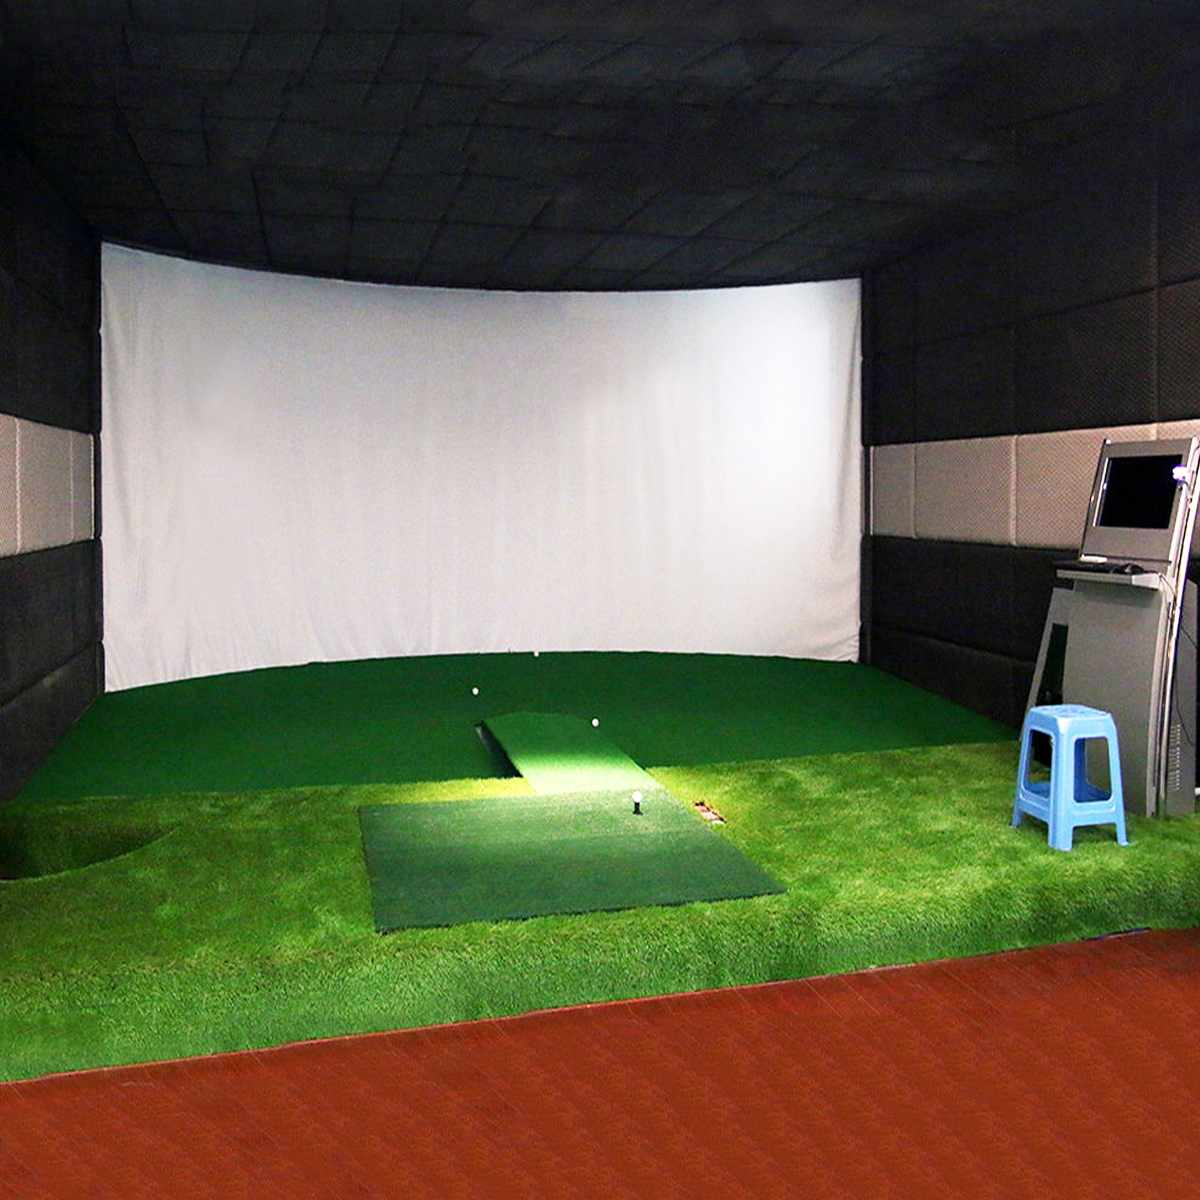 300*200CM Golf Ball Simulator Impact Display Projection Screen Indoor White Cloth Material